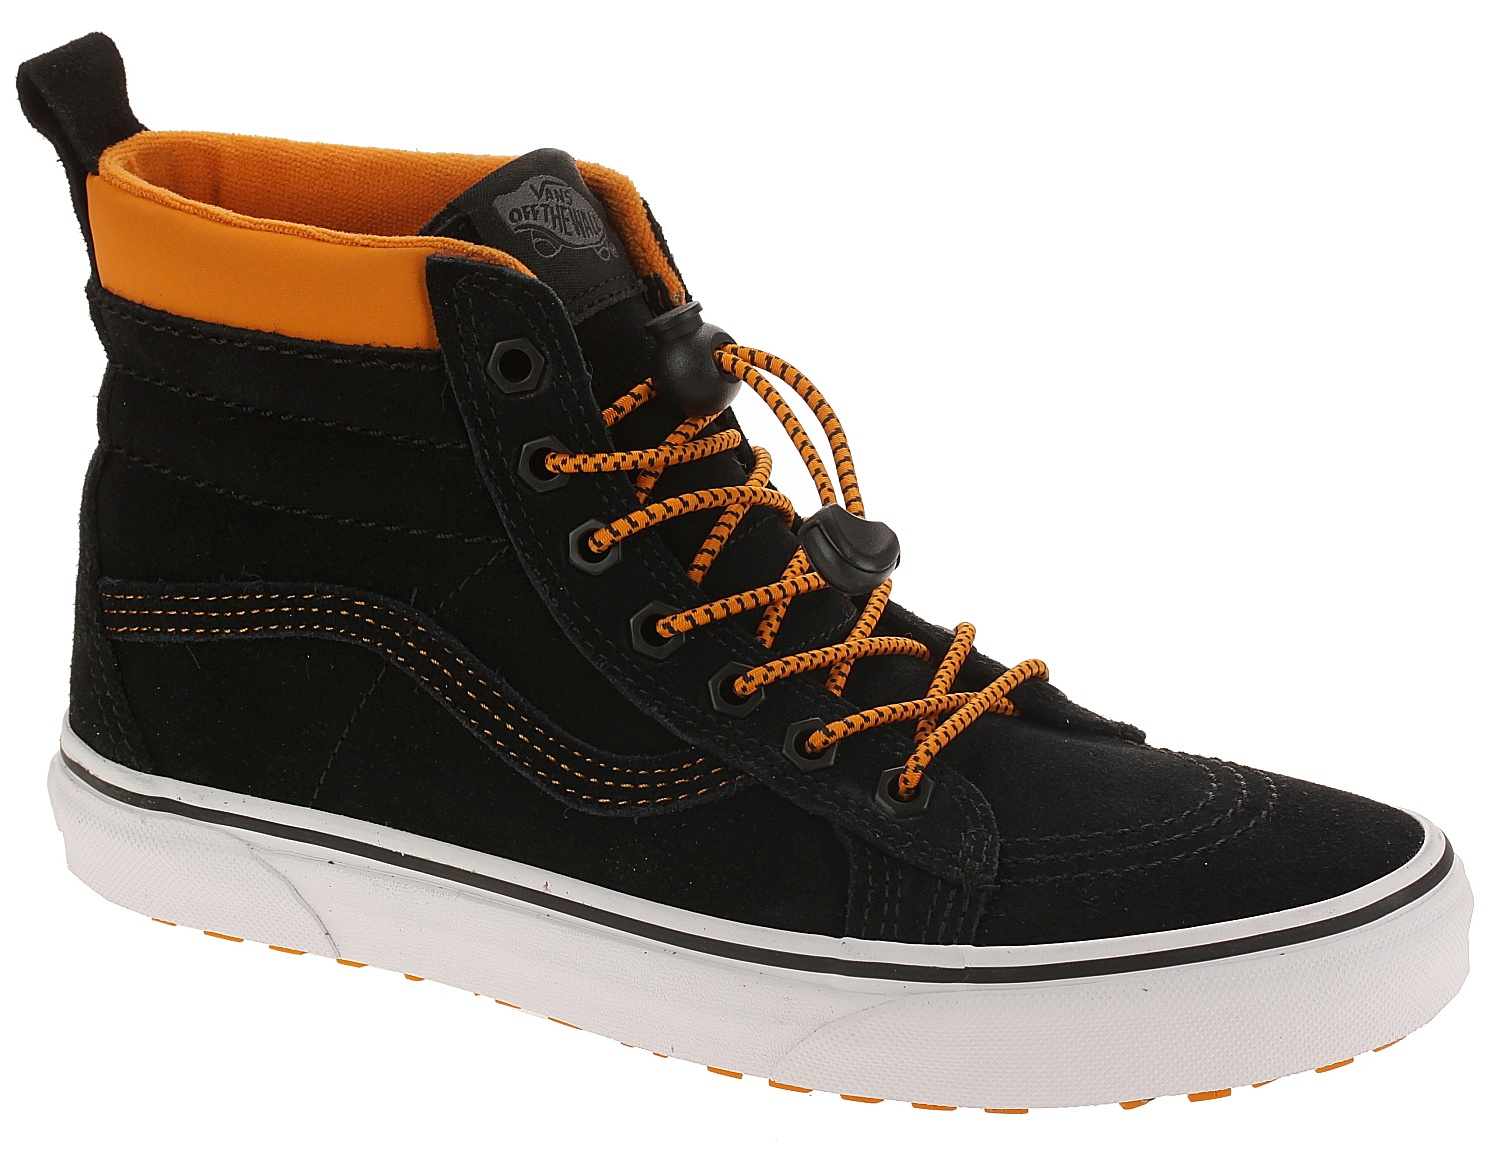 boty Vans Sk8-Hi MTE - MTE Toggle Orange Black 36 0e6f3071649